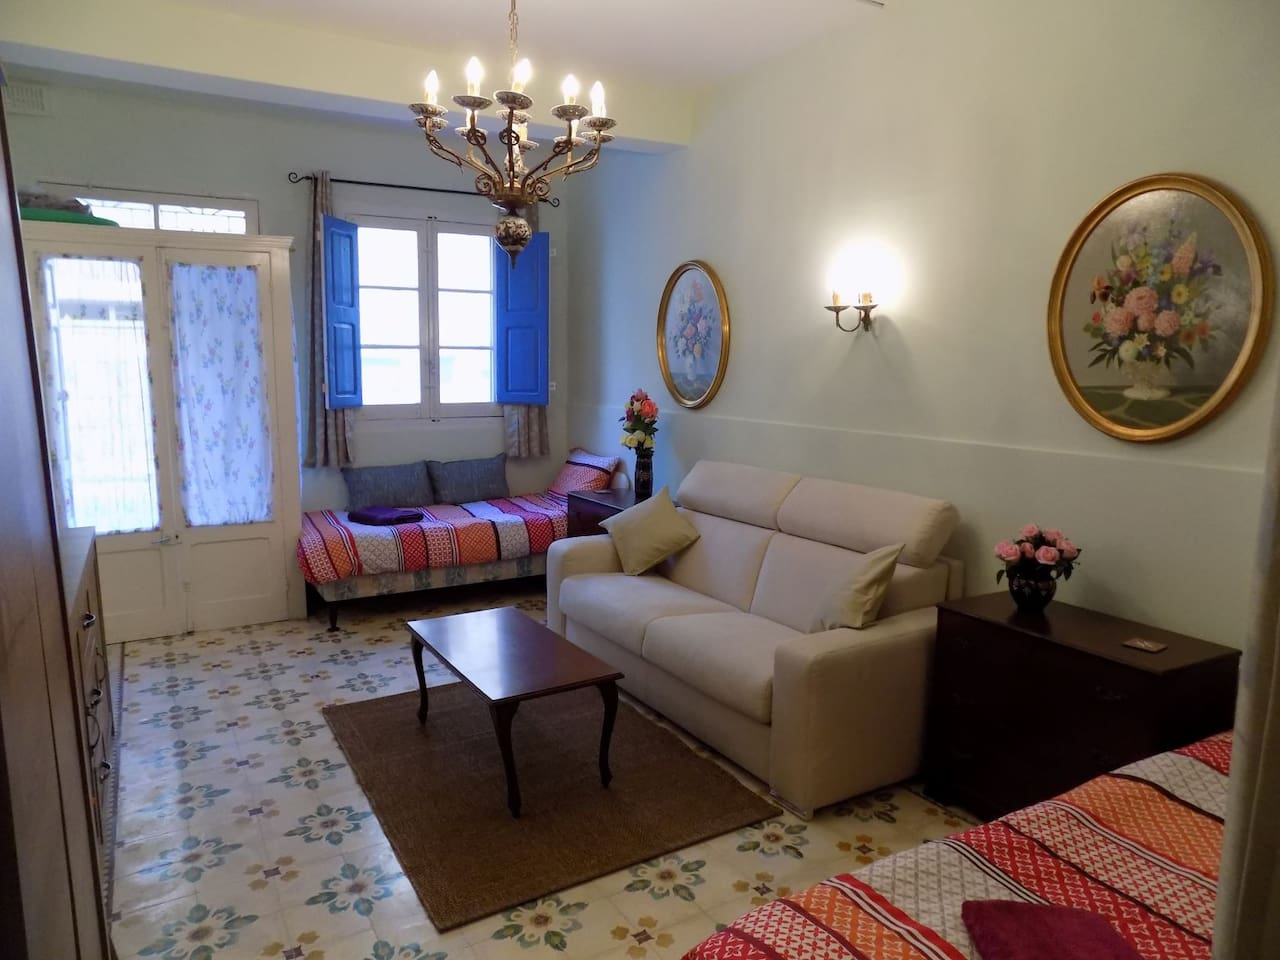 Newly decorated, refurbished and comfortable front room